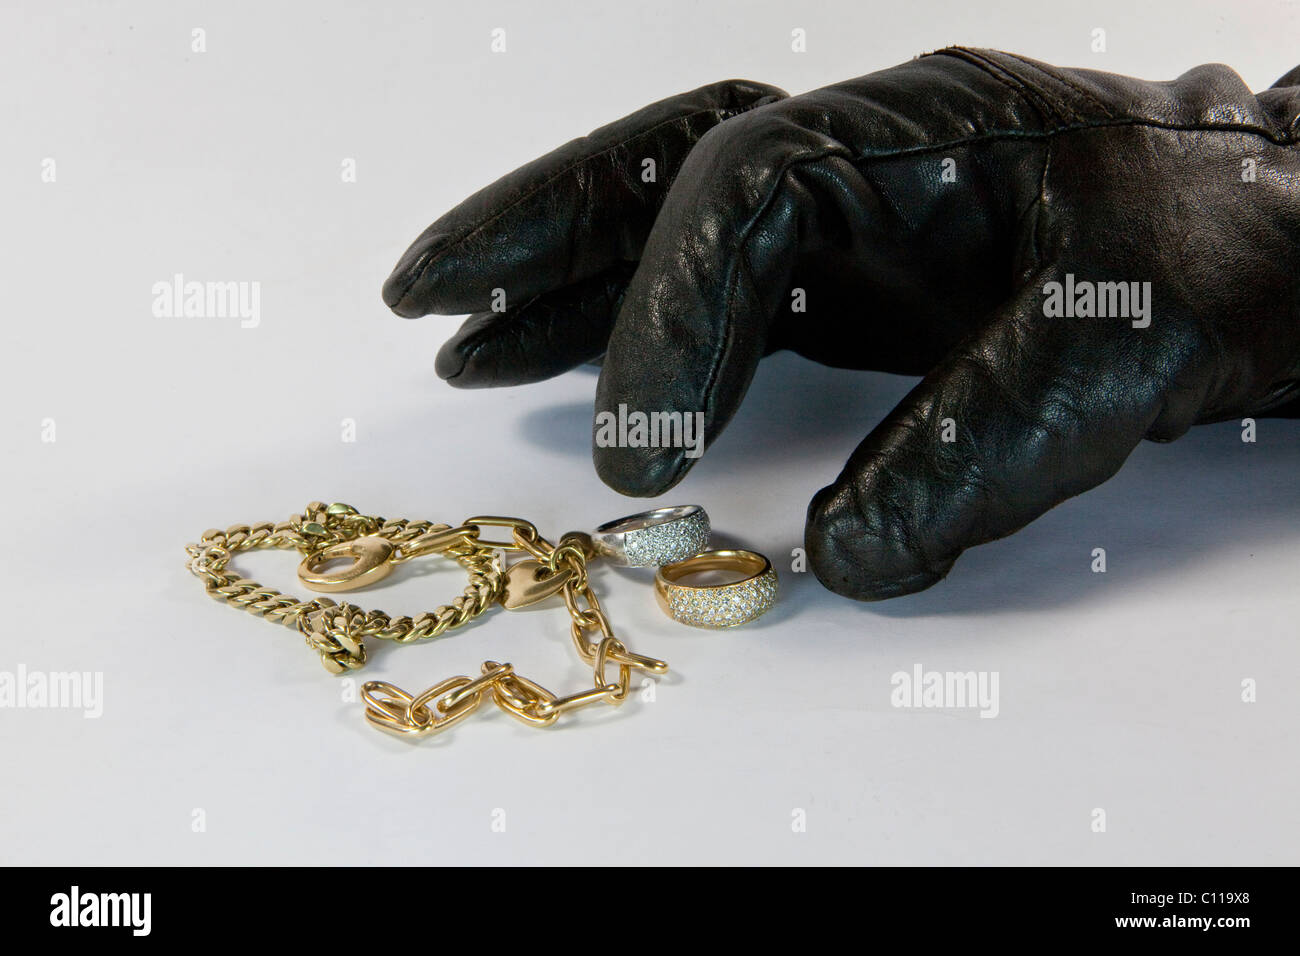 Thief with gloved hand stealing jewelry - Stock Image